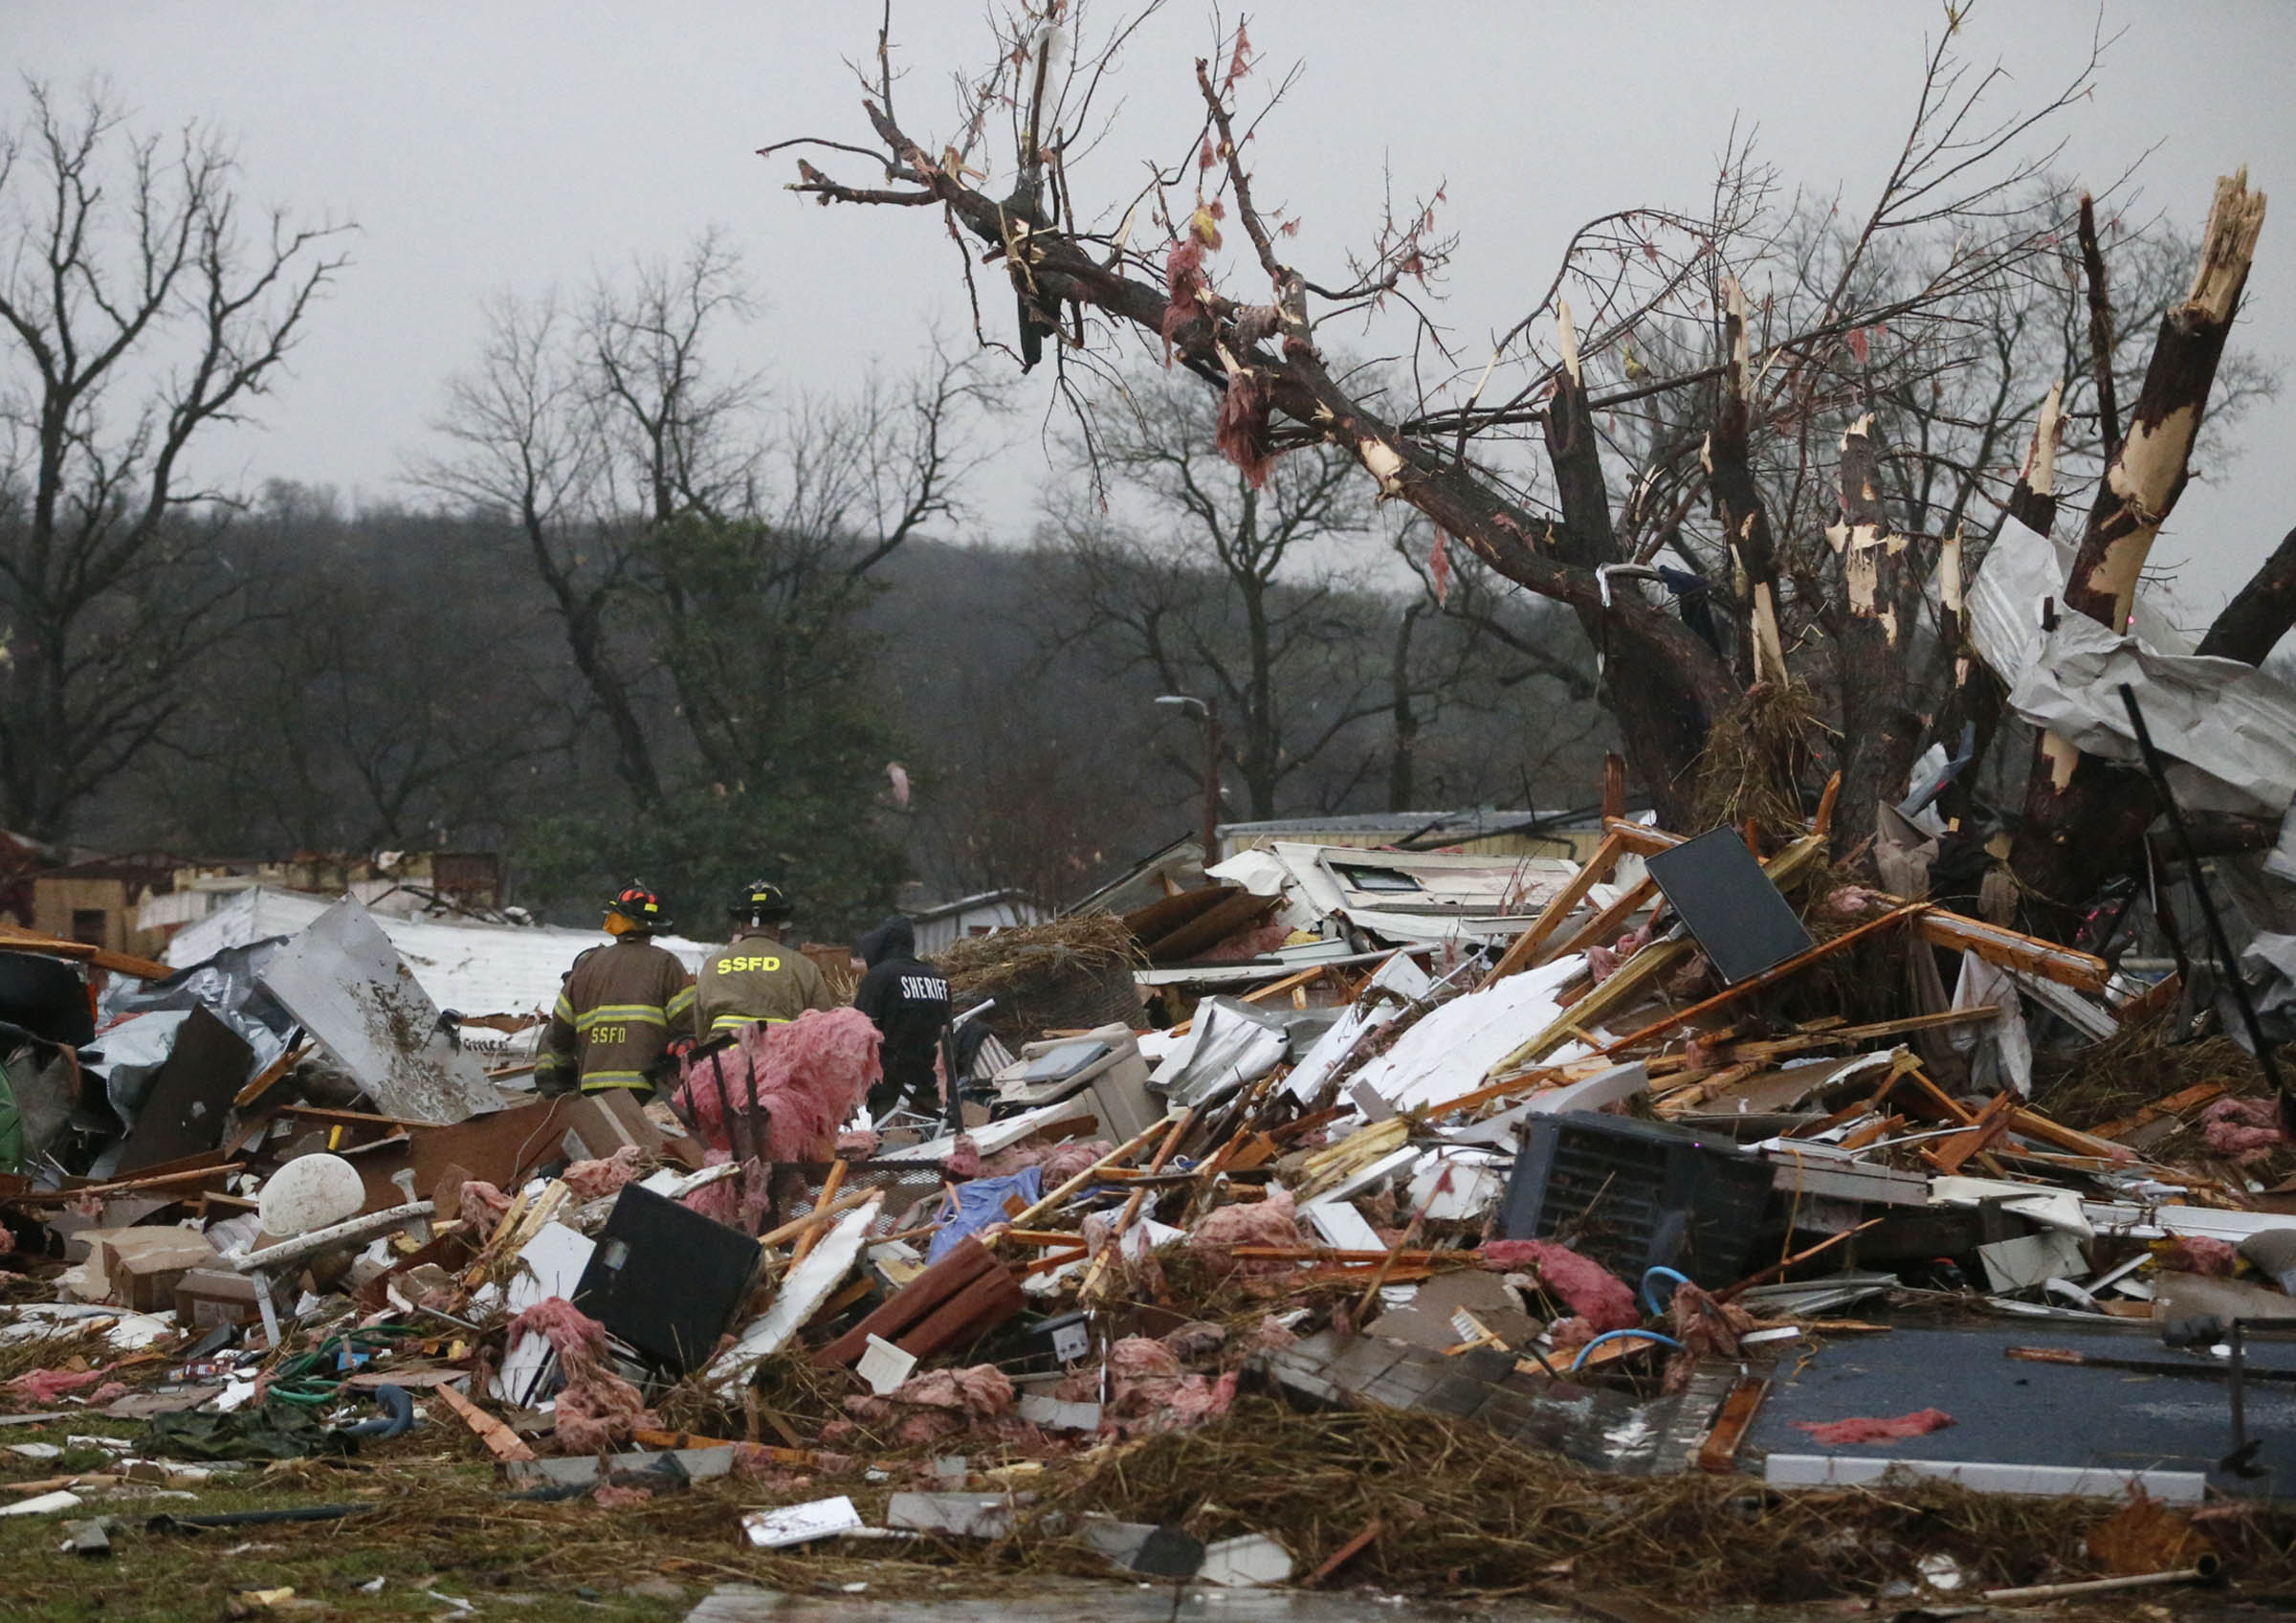 First responders work to free a man from a rubble pile after a round of severe weather hit a trailer park in Sand Springs, Okla., on March 25, 2015.